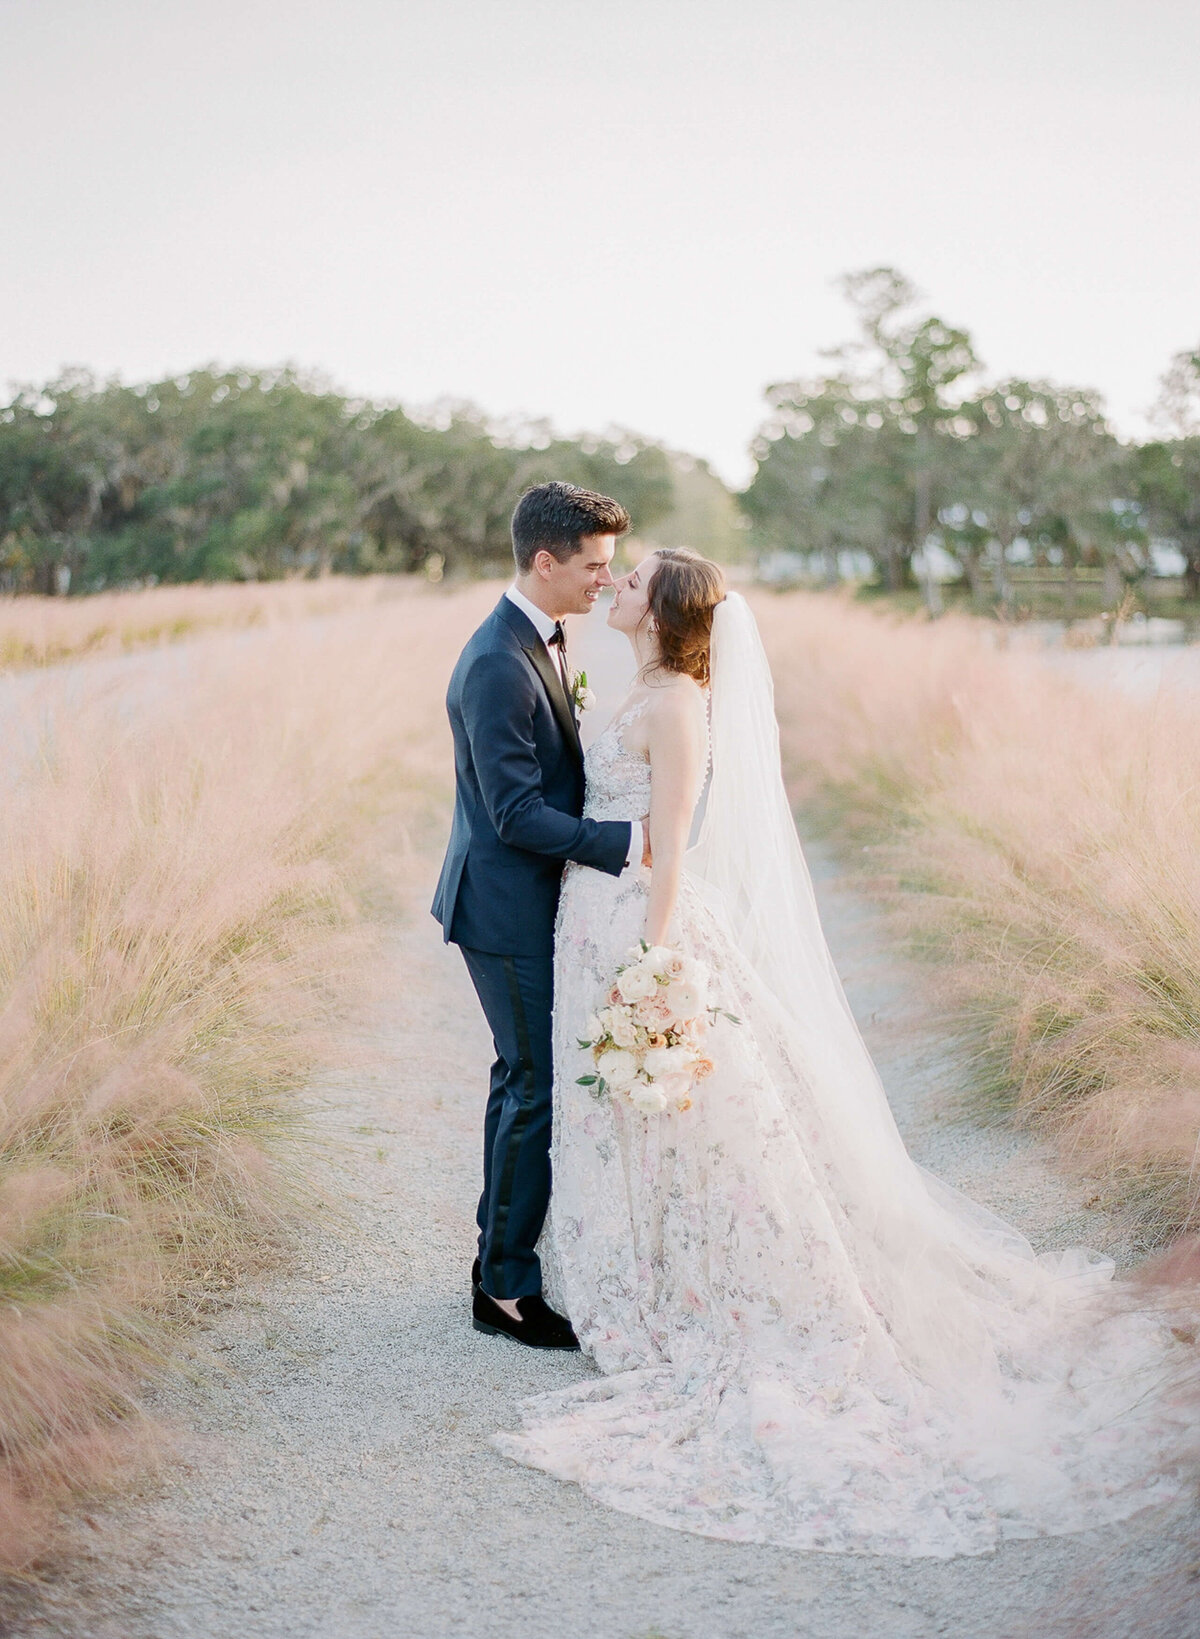 kiawah-river-wedding-clay-austin-photography-61